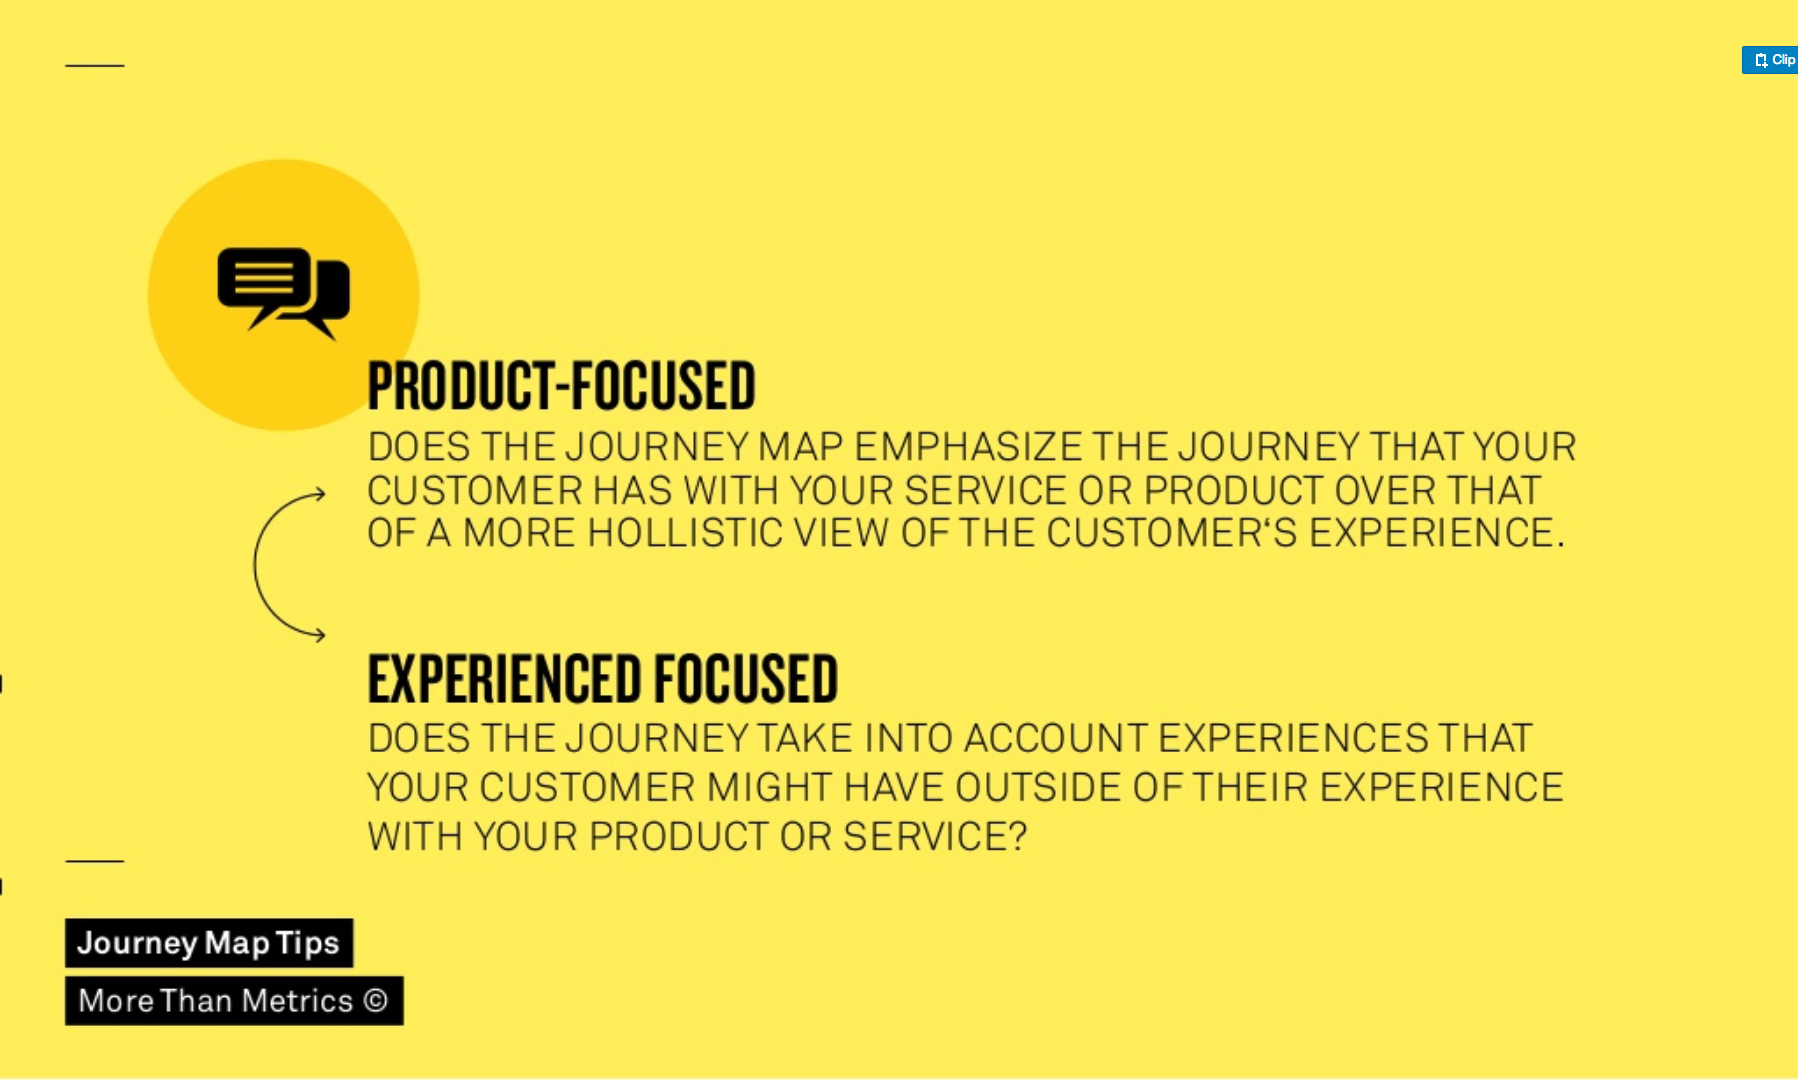 A customer journey map can focus on  a customer's interaction with your service or product or it can focus on his whole experience in general.